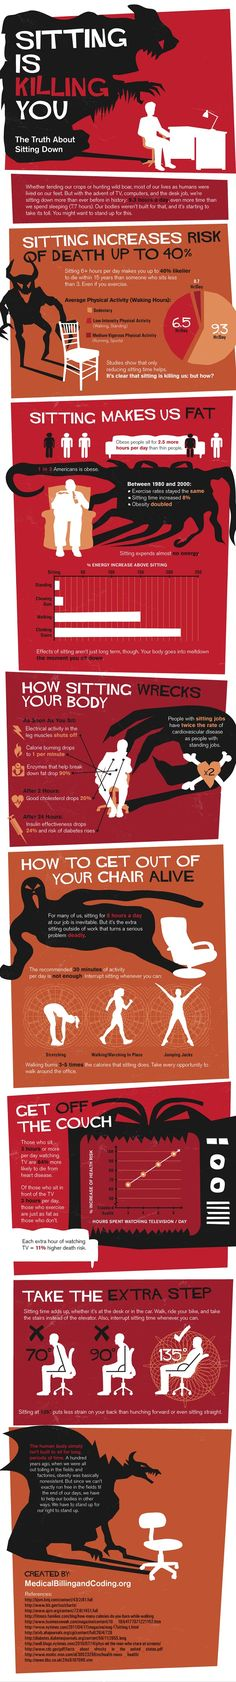 "Health dangers of ""sitting"" #Infographic______________So it looks like I'm going to die within 15 years. Add Pinterest to that equation and it now looks closer to 5. Oh well."